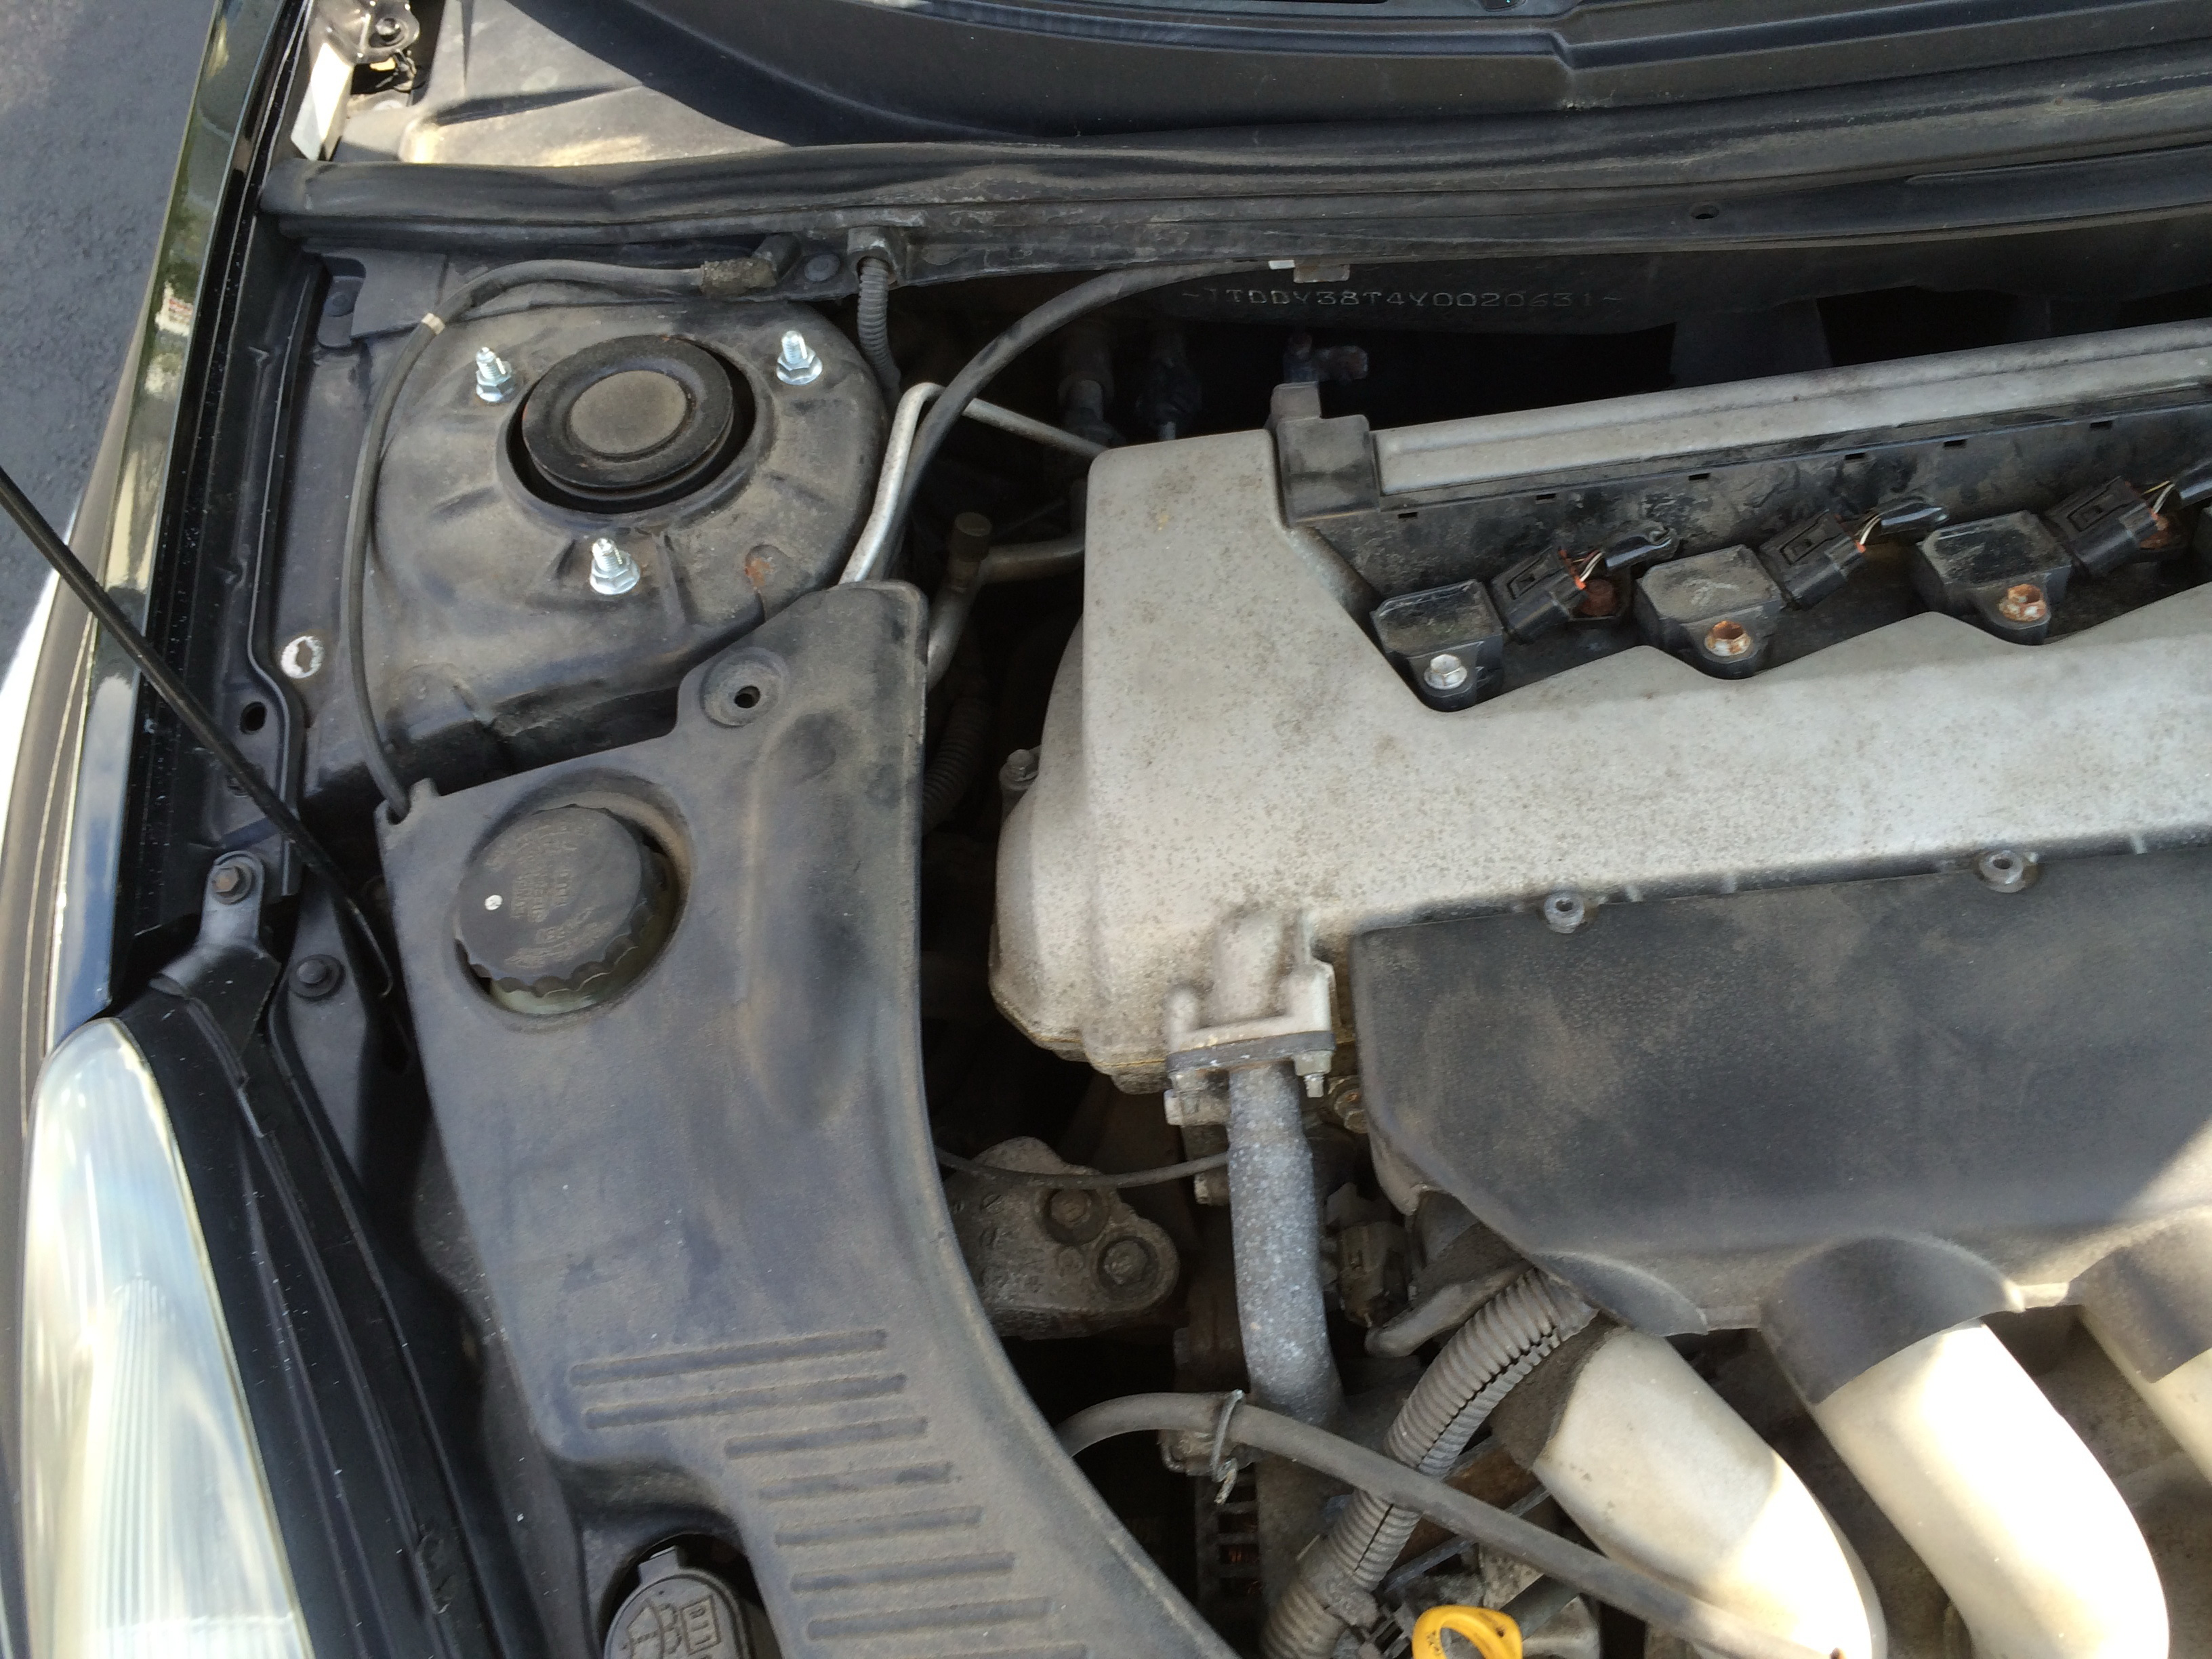 2000 Celica Low AC Port Section.jpg